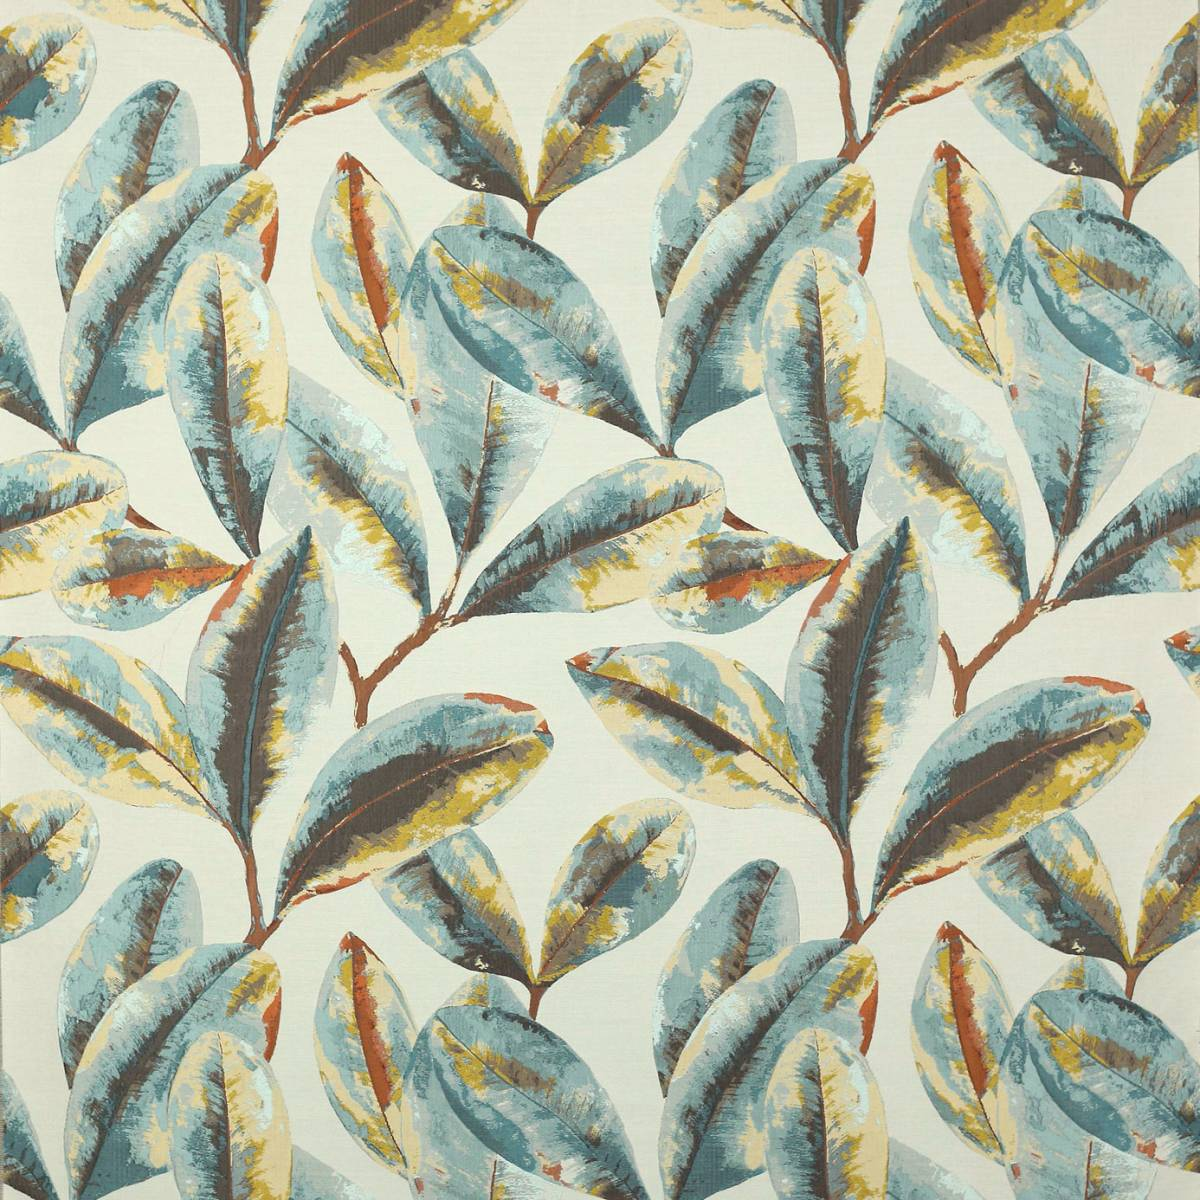 Bahia Fabric Teal Copper J941f 01 Jane Churchill